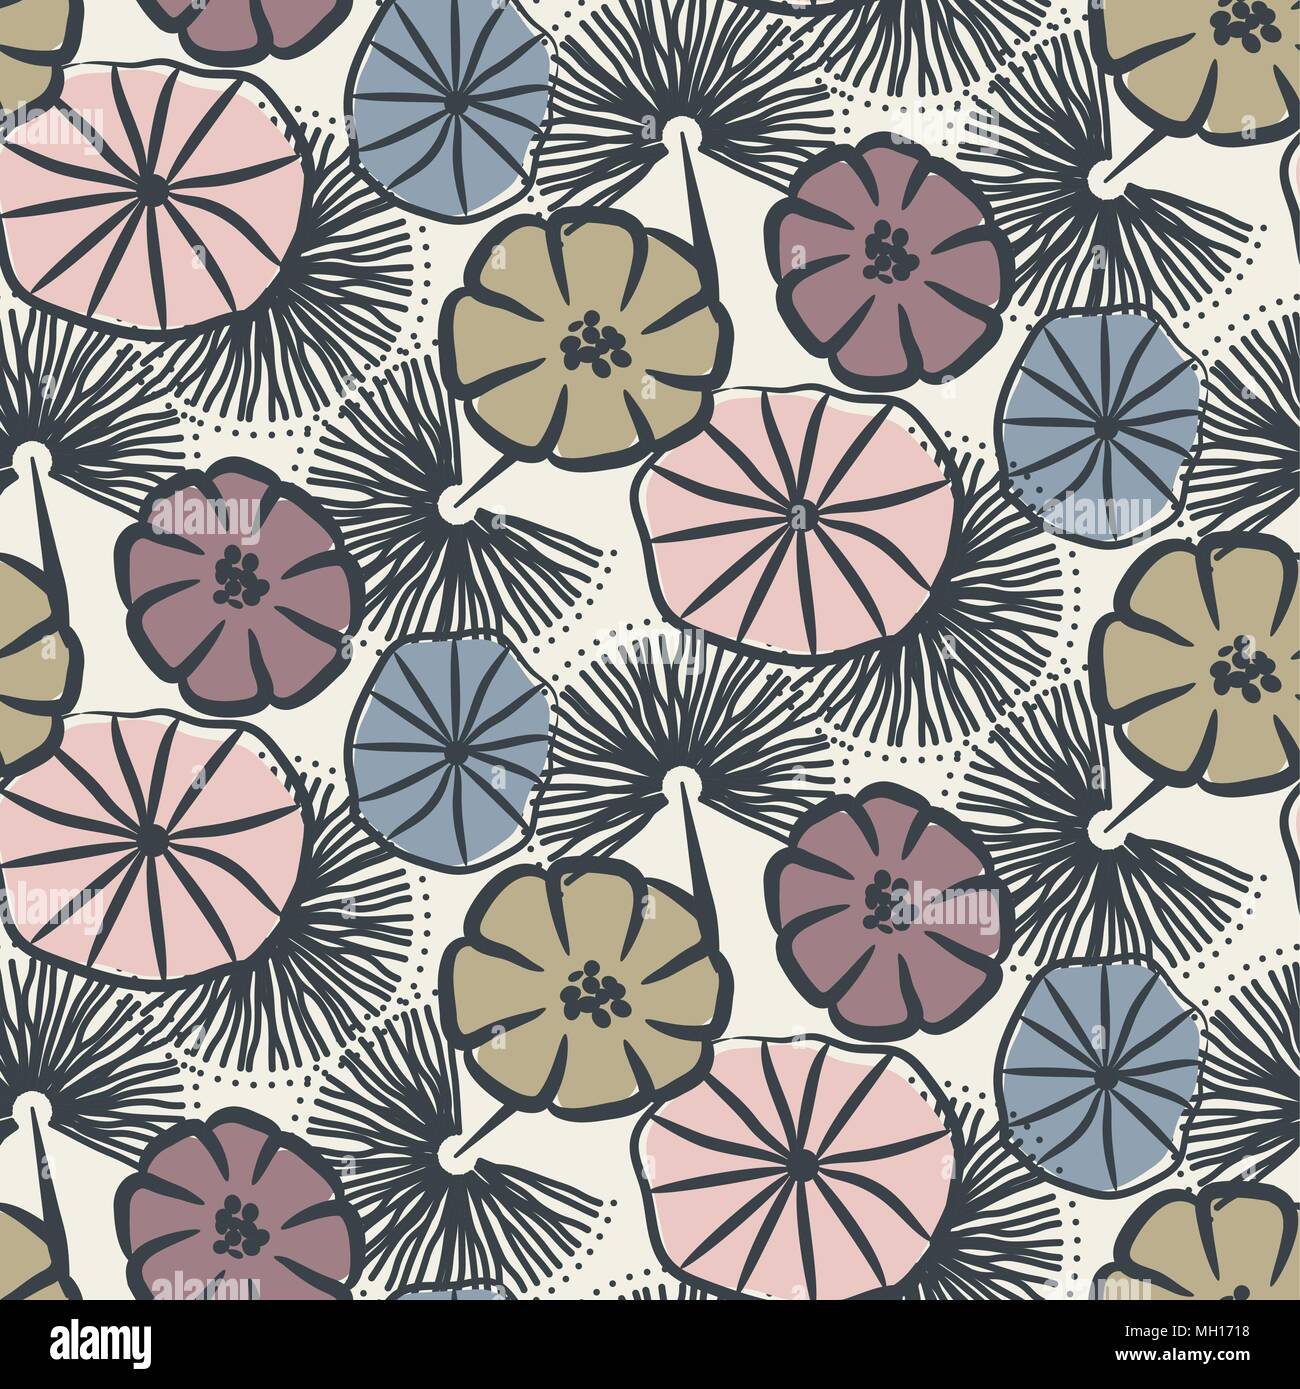 Flower seamless vector pattern illustration. - Stock Vector